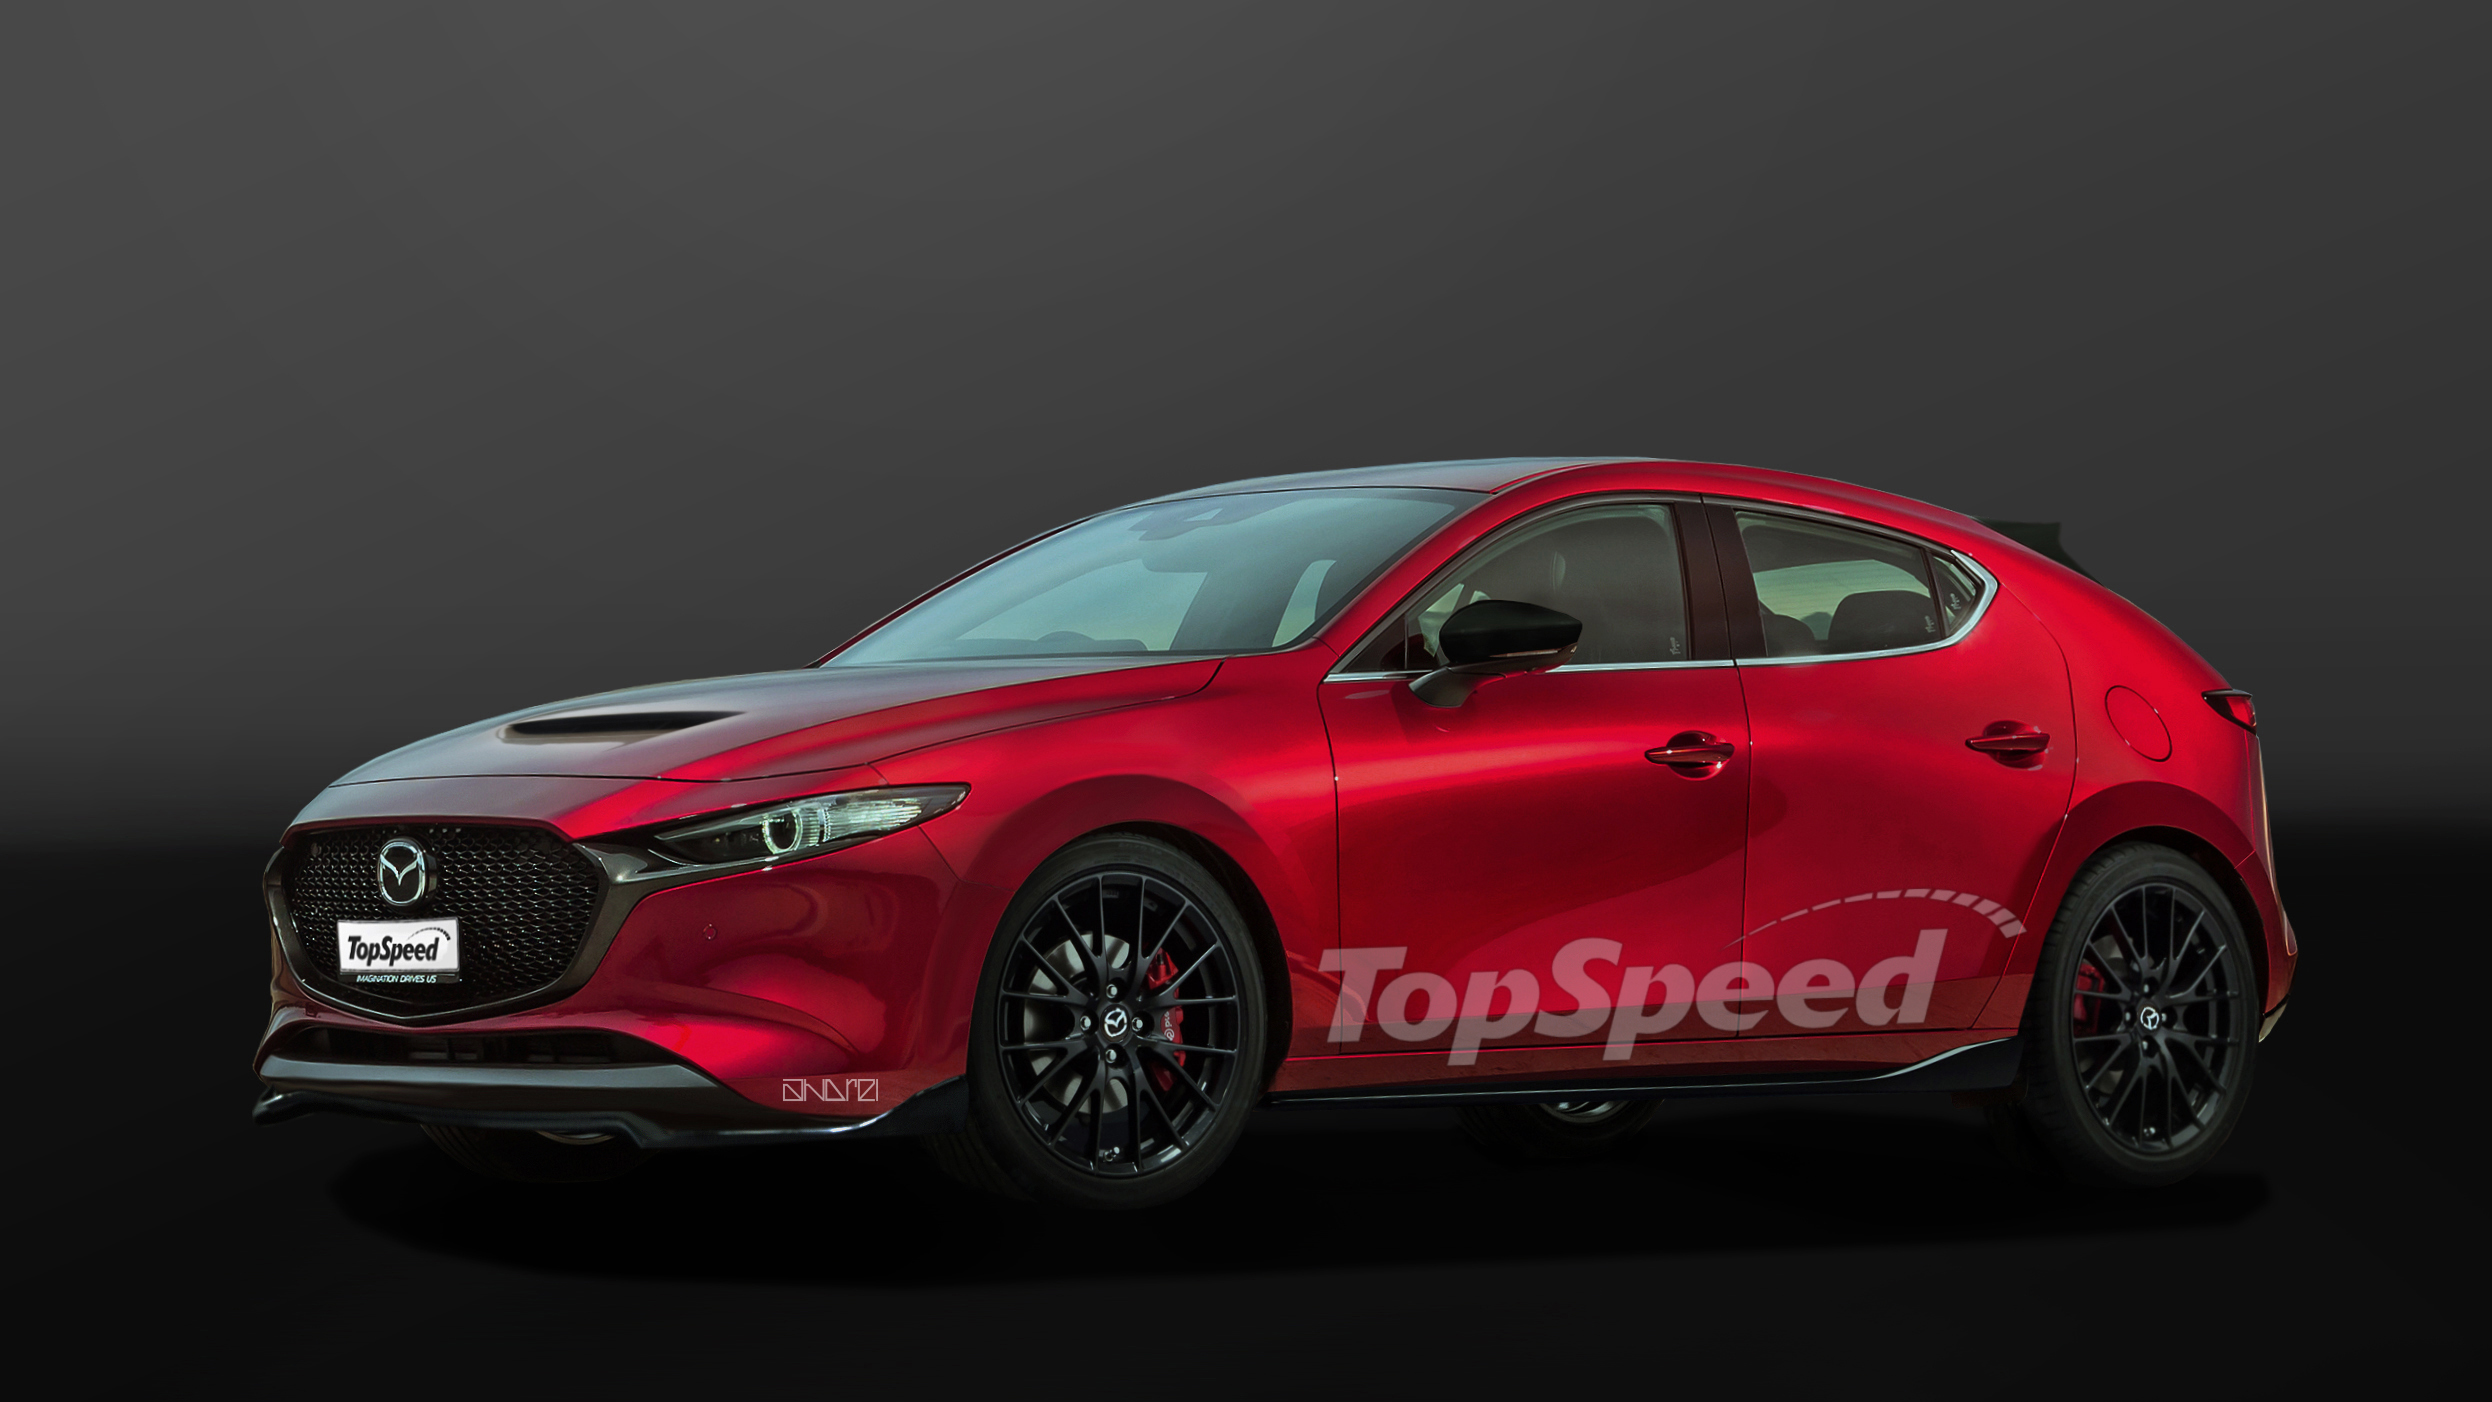 2021 Mazda 3 Specs, Price & Release Date >> We Know You Want A Mazda 3 Hot Hatch To Take On Your Buddy S Ford